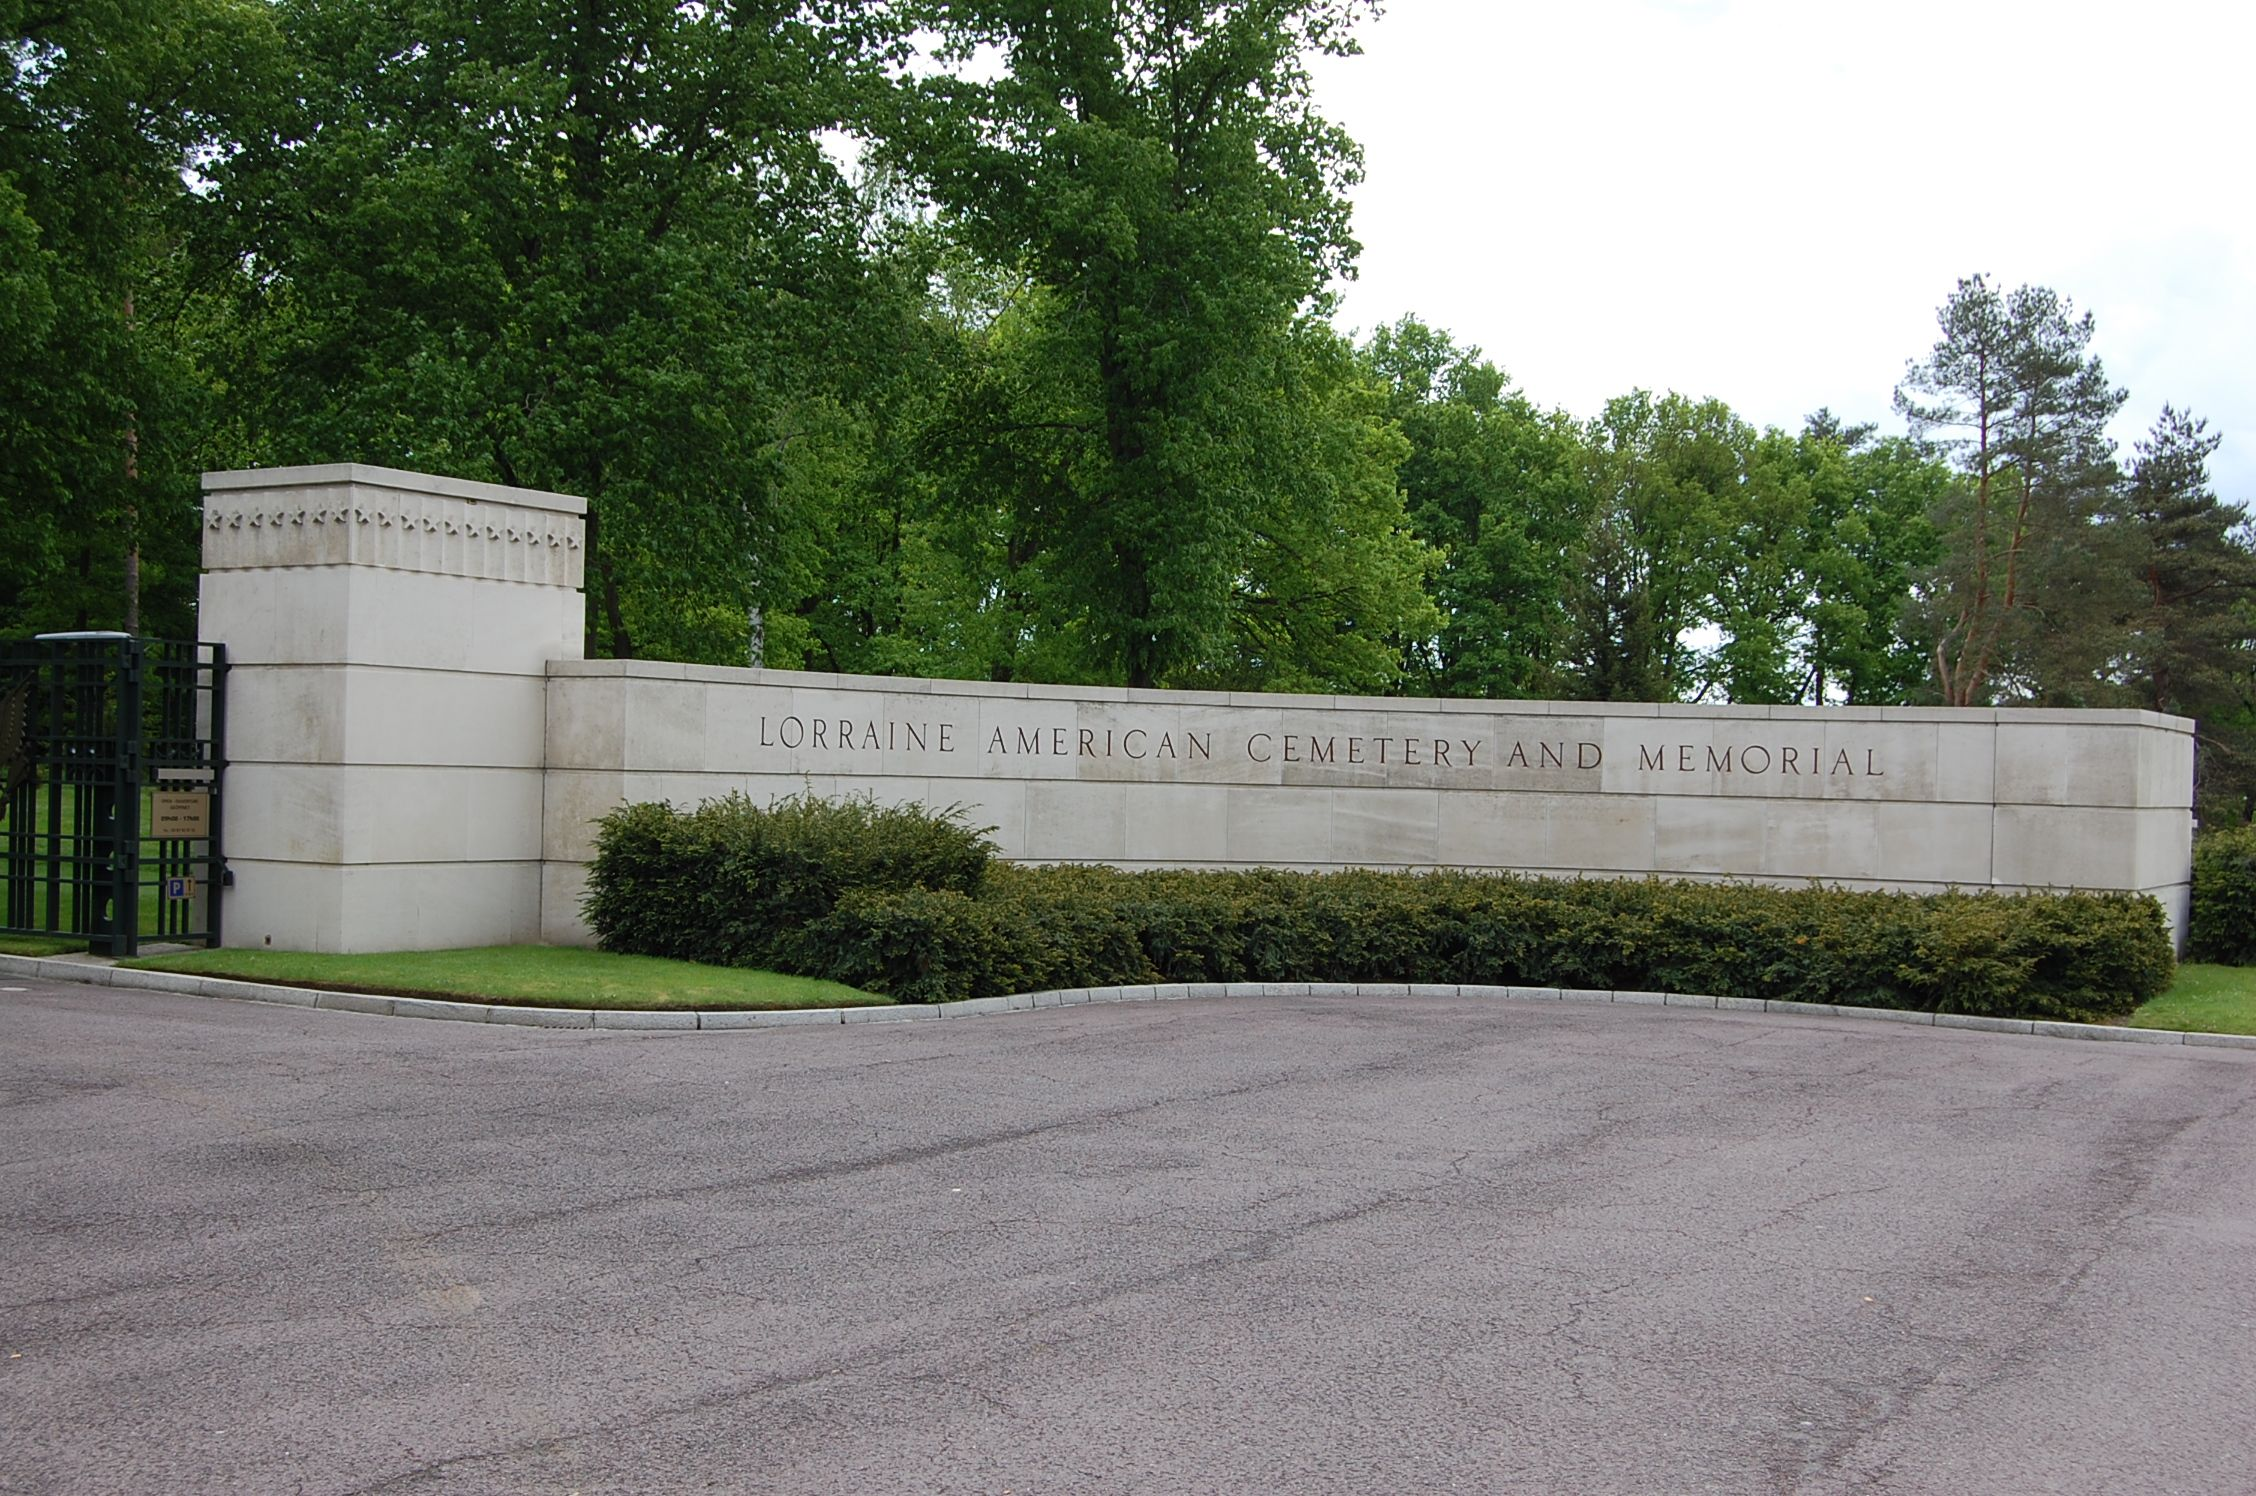 Lorraine American Cemetery and Memorial